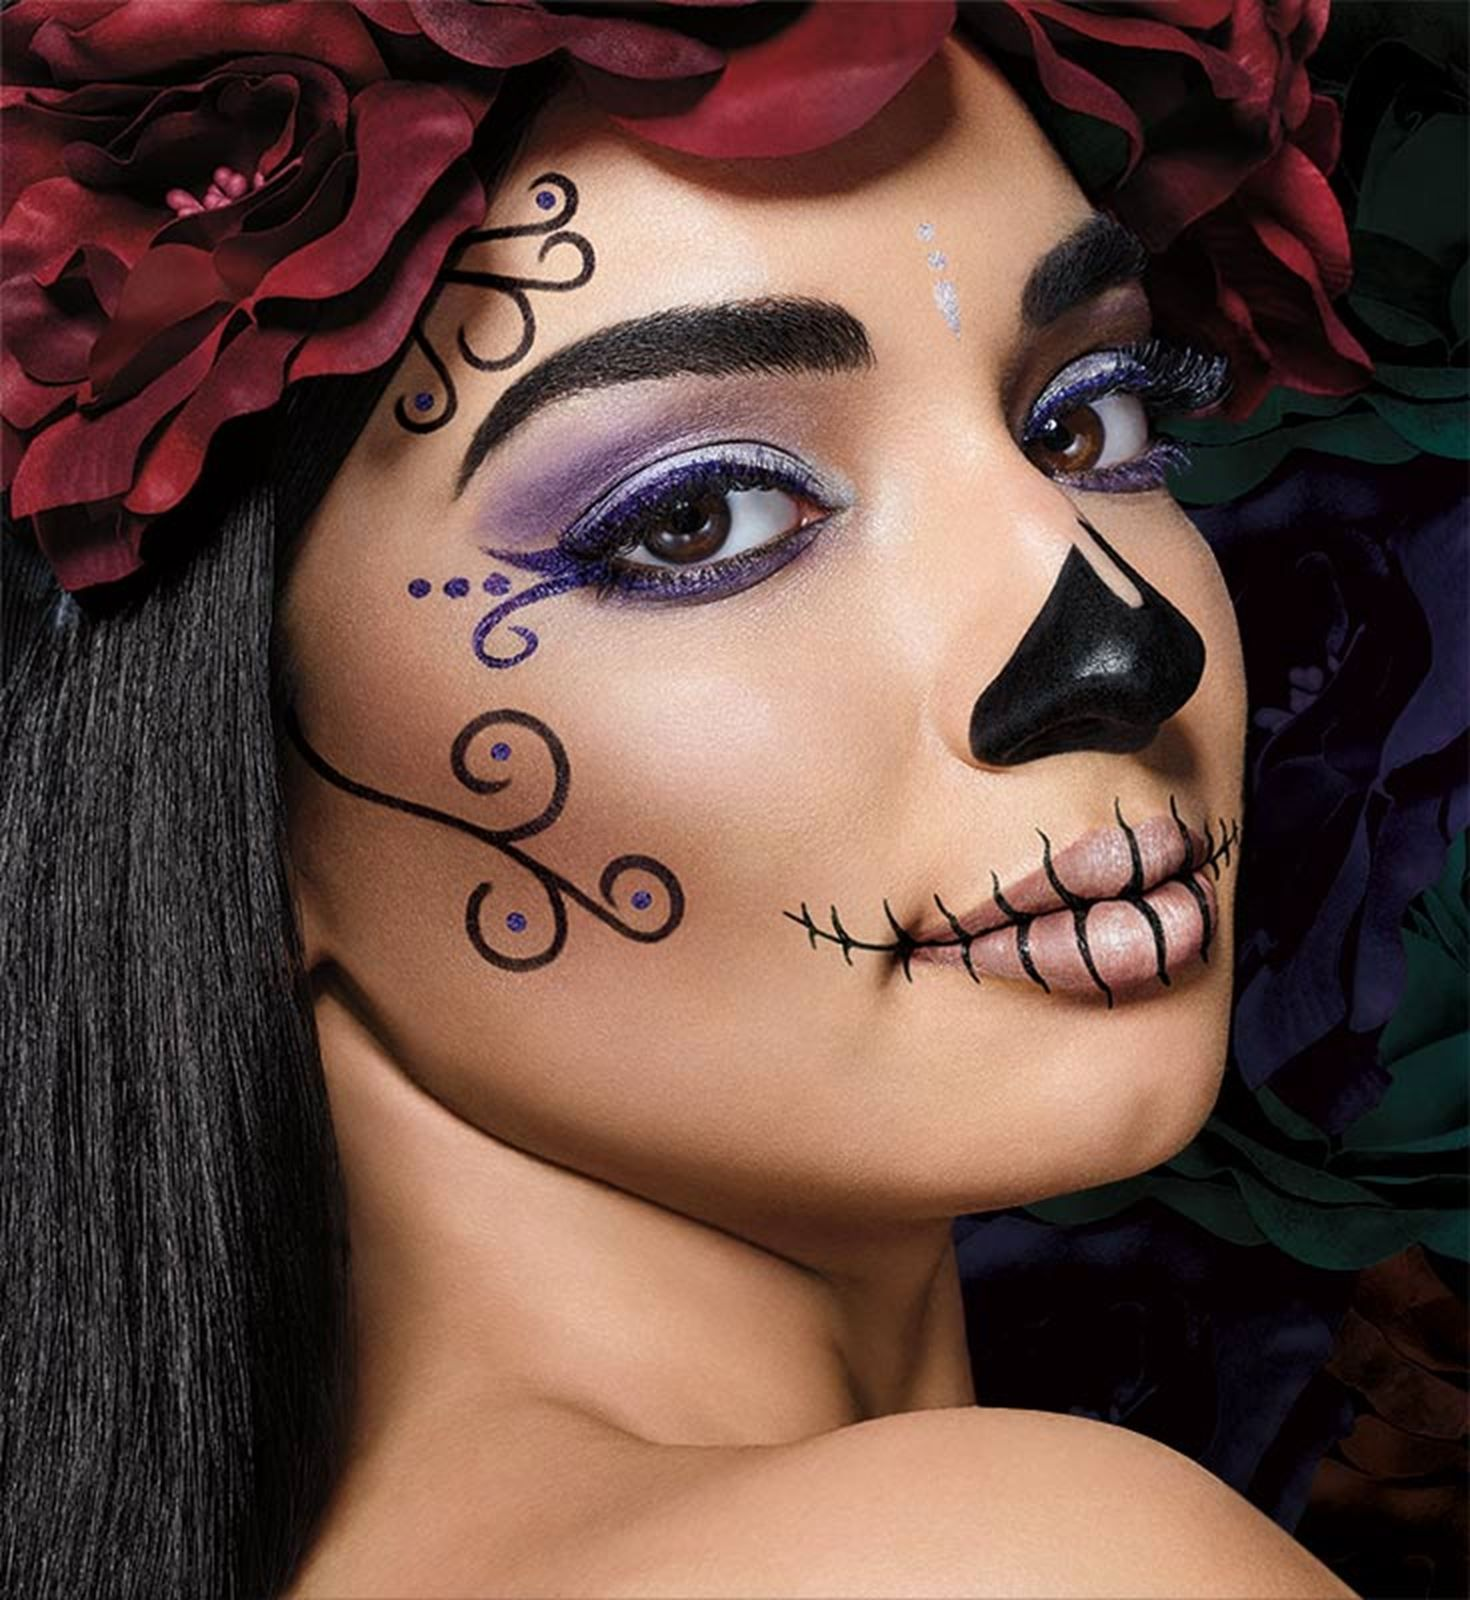 Creepy Spider Eyes Makeup Design perfect for Halloween